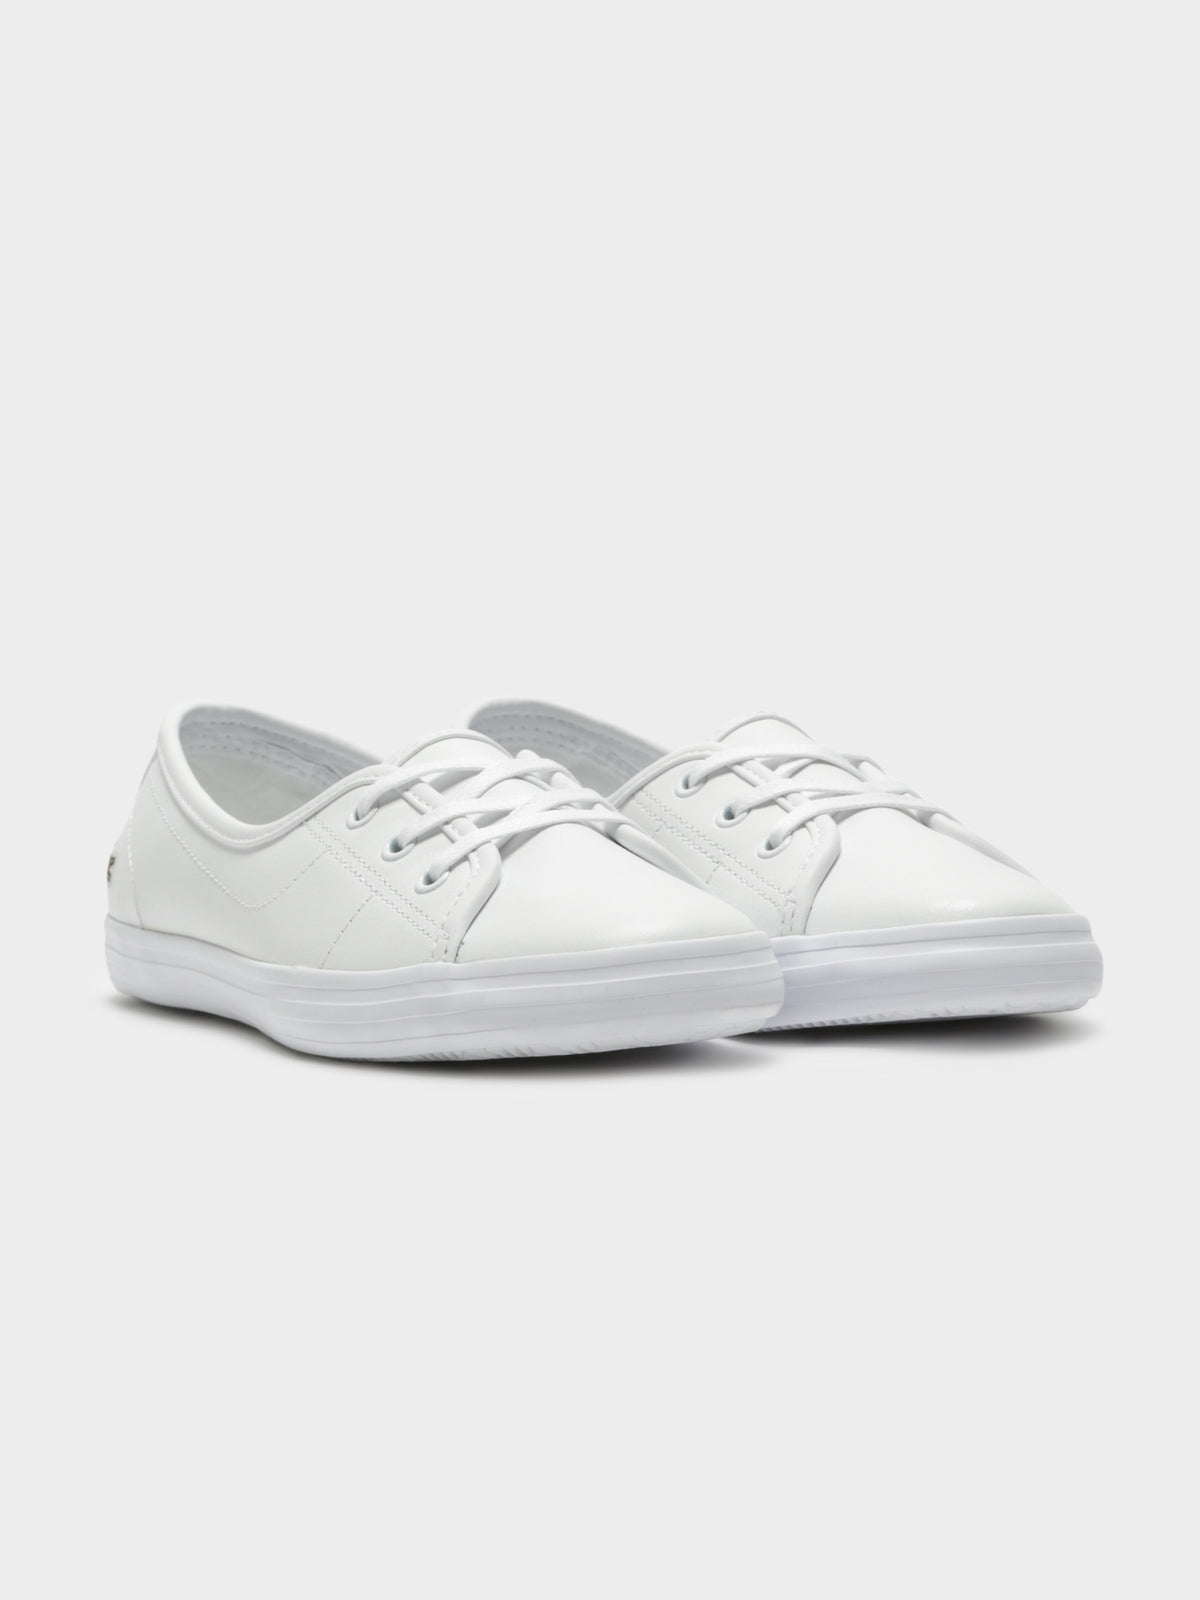 Womens Ziana Chunky BL 1 Sneakers in White